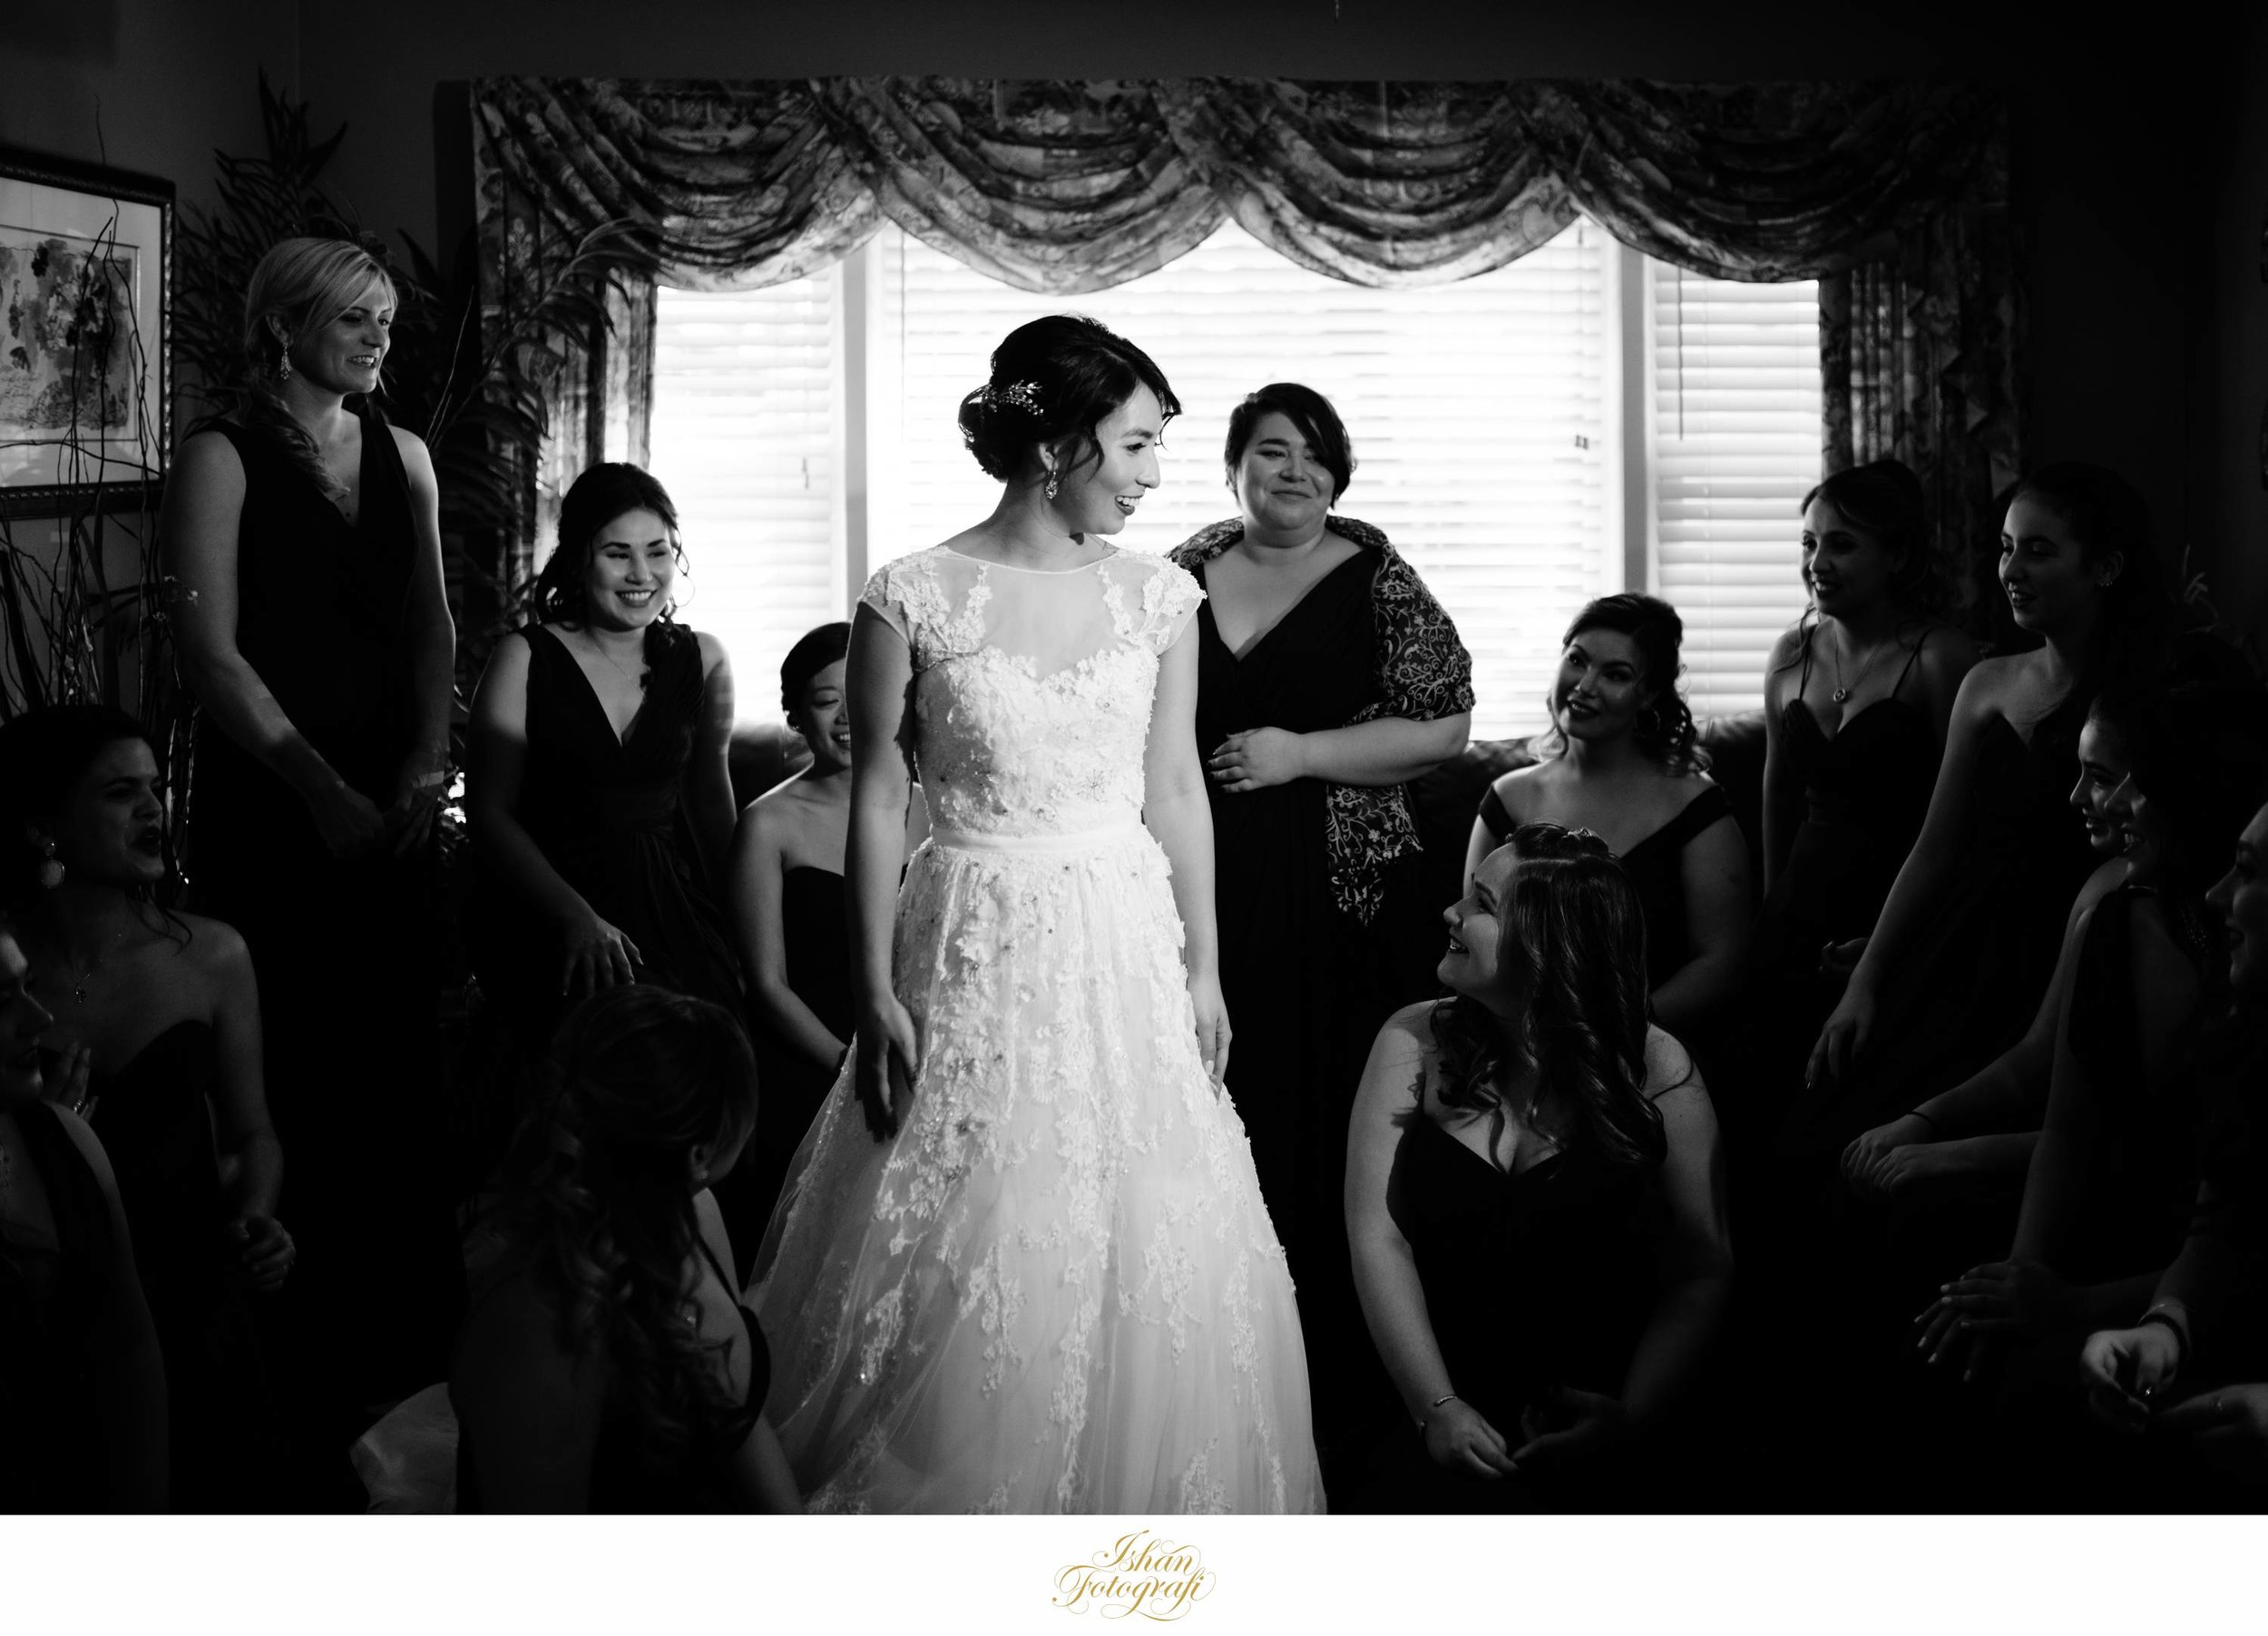 This was a big bridal party and they were all so eager to help our bride!